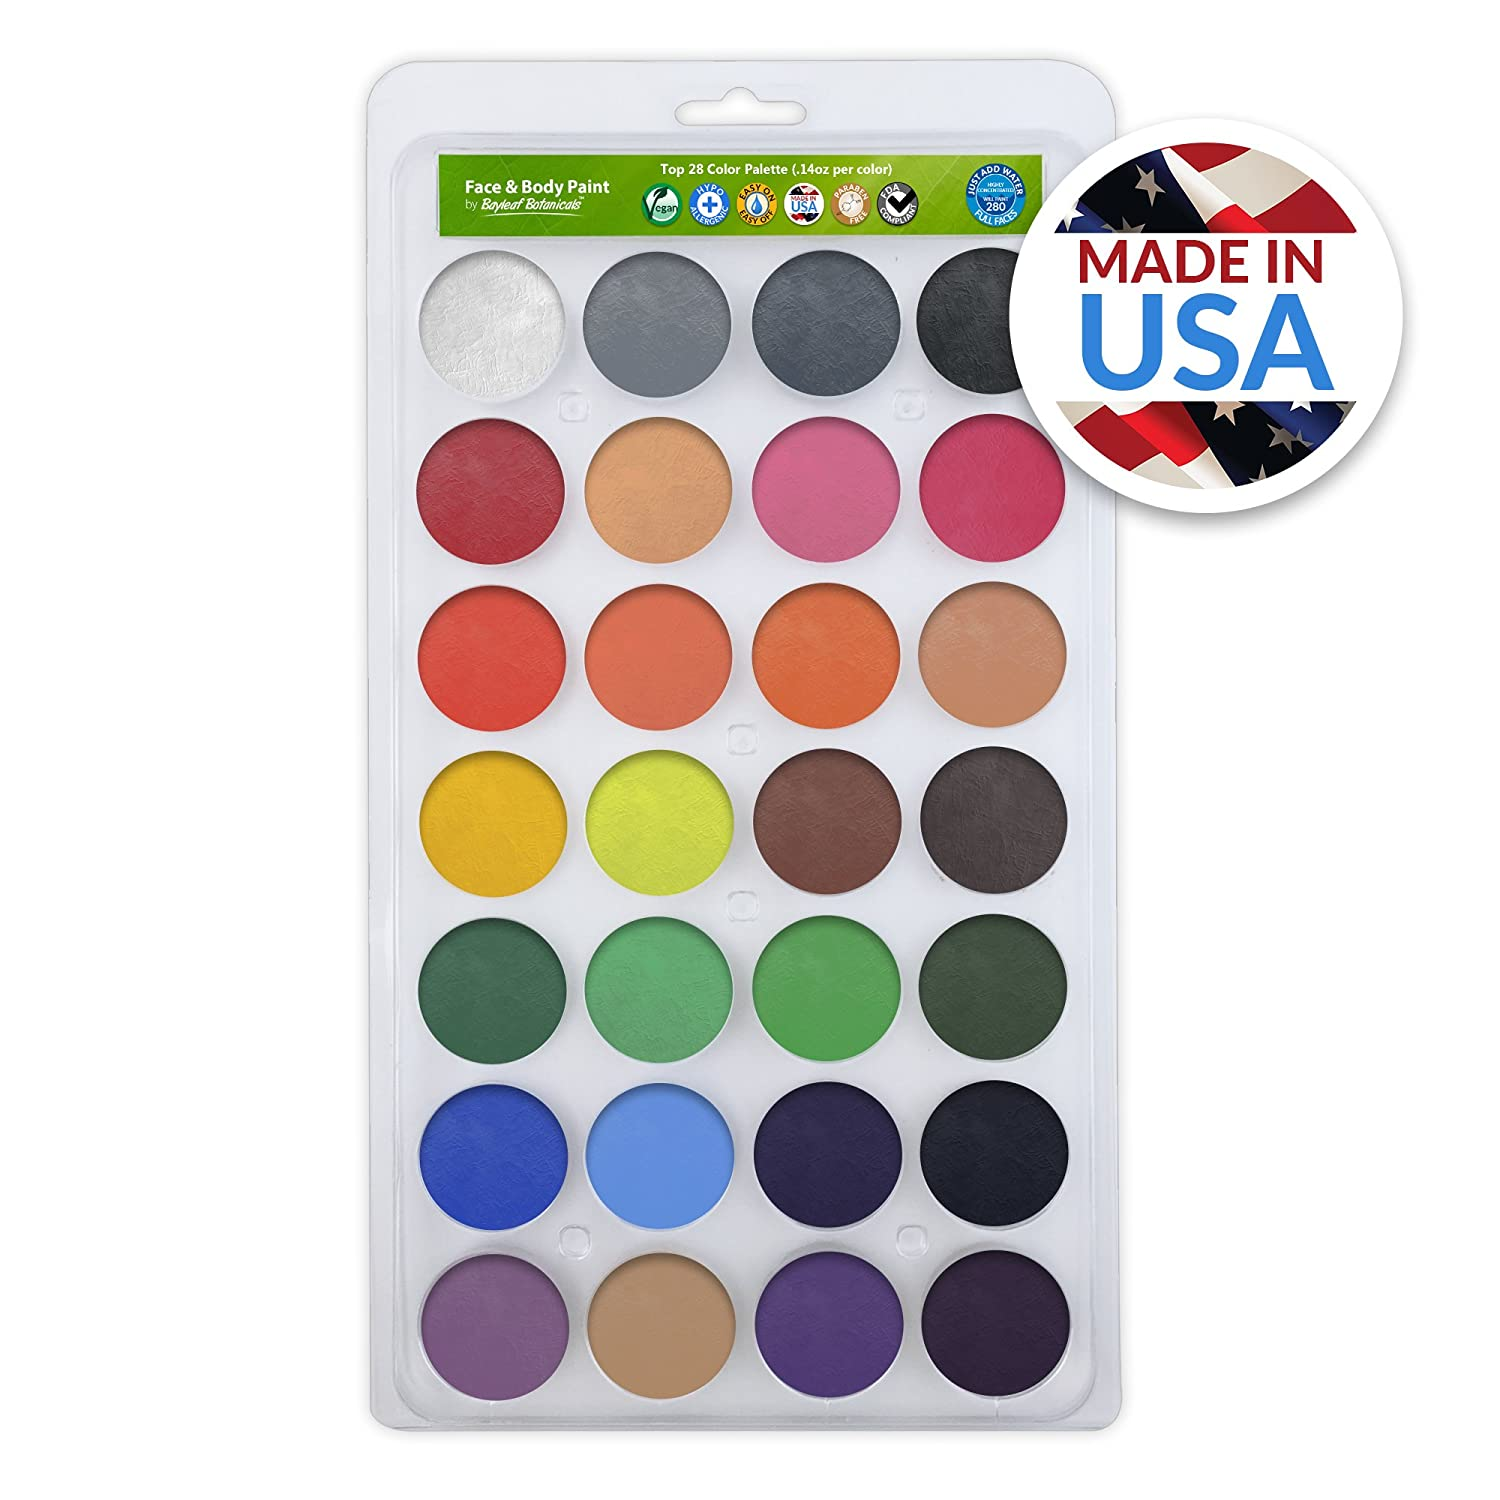 Amazon vegan face paint kit top 28 color palette face amazon vegan face paint kit top 28 color palette face paints 280 full faces volume painting made in the usa hypo allergenic paraben free sciox Images